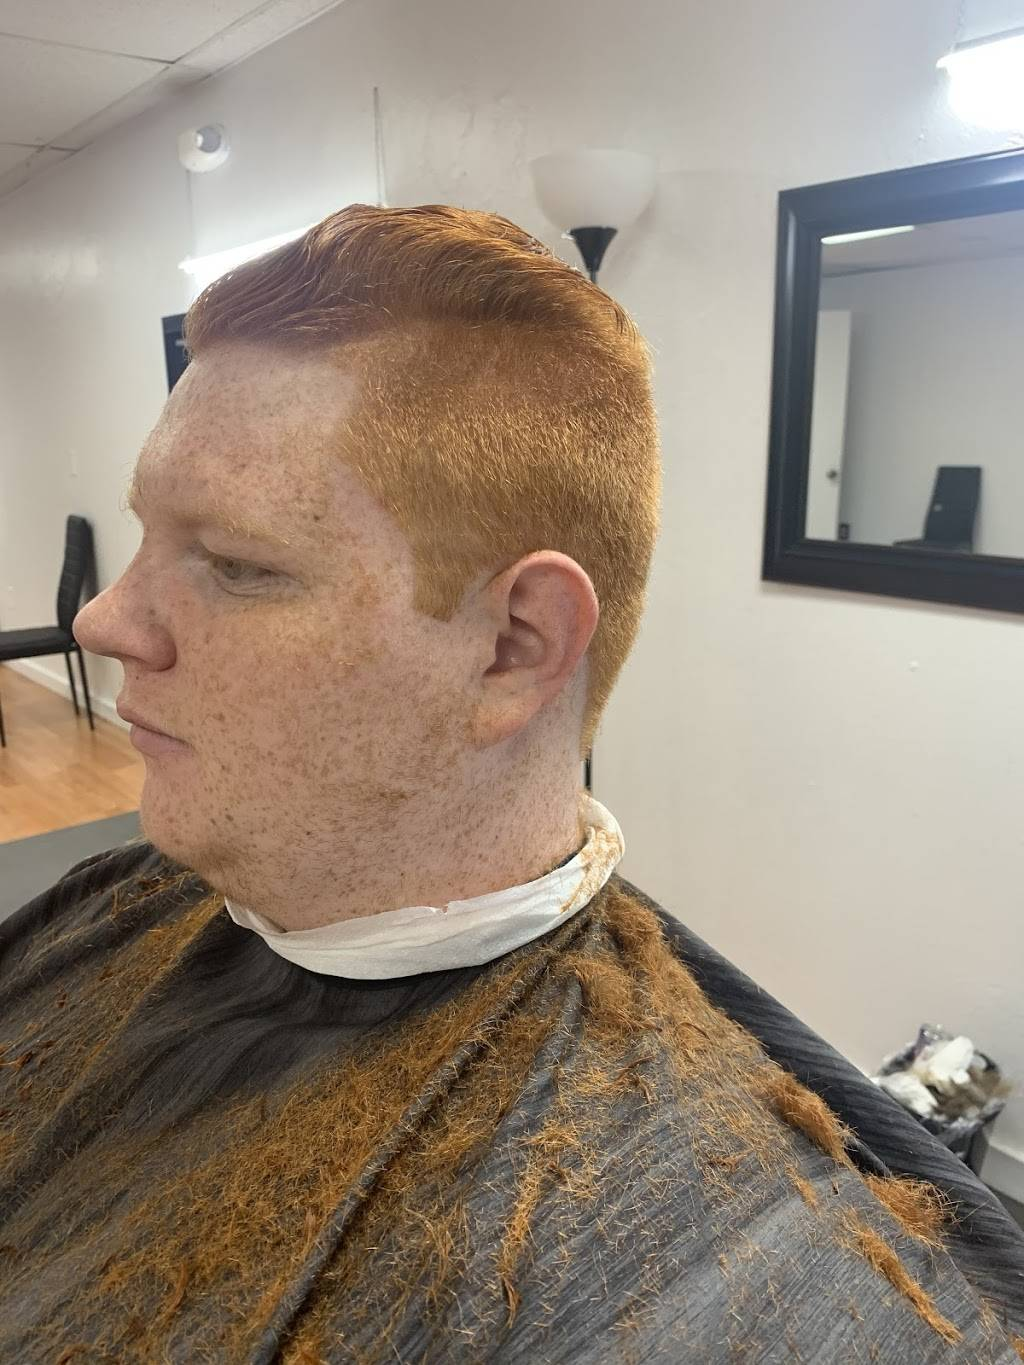 The After Hour Barbershop - hair care  | Photo 7 of 9 | Address: 12272 NE 23rd St, Choctaw, OK 73020, USA | Phone: (405) 339-1440